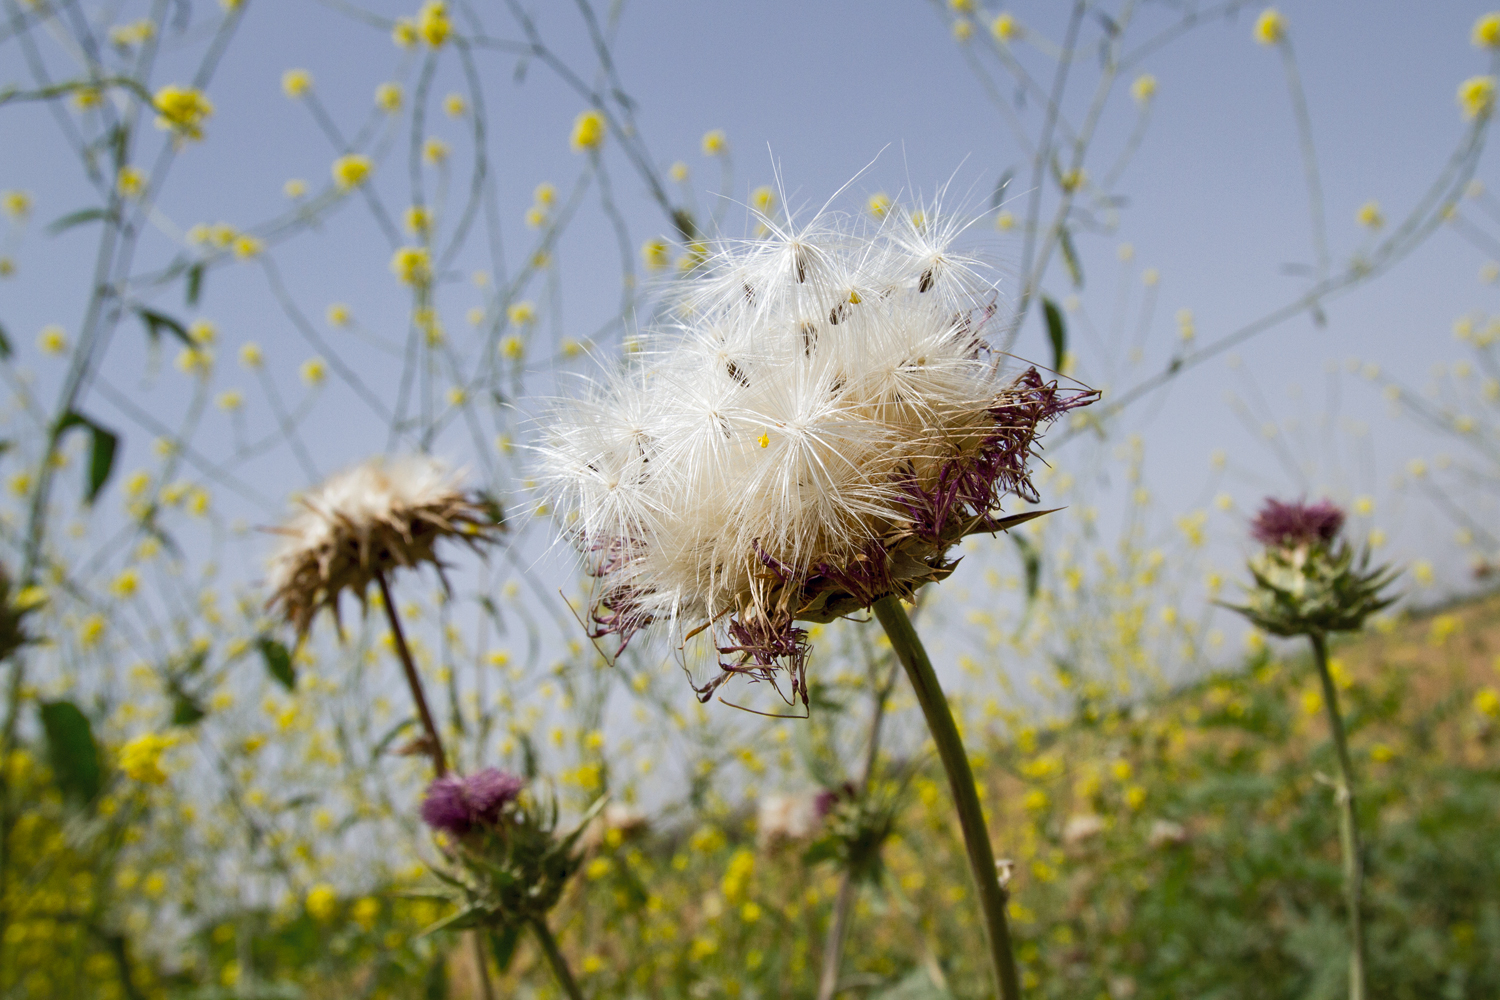 Since antiquity, herbalists have prescribed milk thistle ( Silybum marianum ). Modern Iraqi pharmacology research expands on traditional applications, identifying its seeds as a treatment for liver disease. Dr Ali Askari, a former professor at the College of Agriculture, predicts that it could be more profitable than wheat, a crop that is no longer generating revenue for the region.